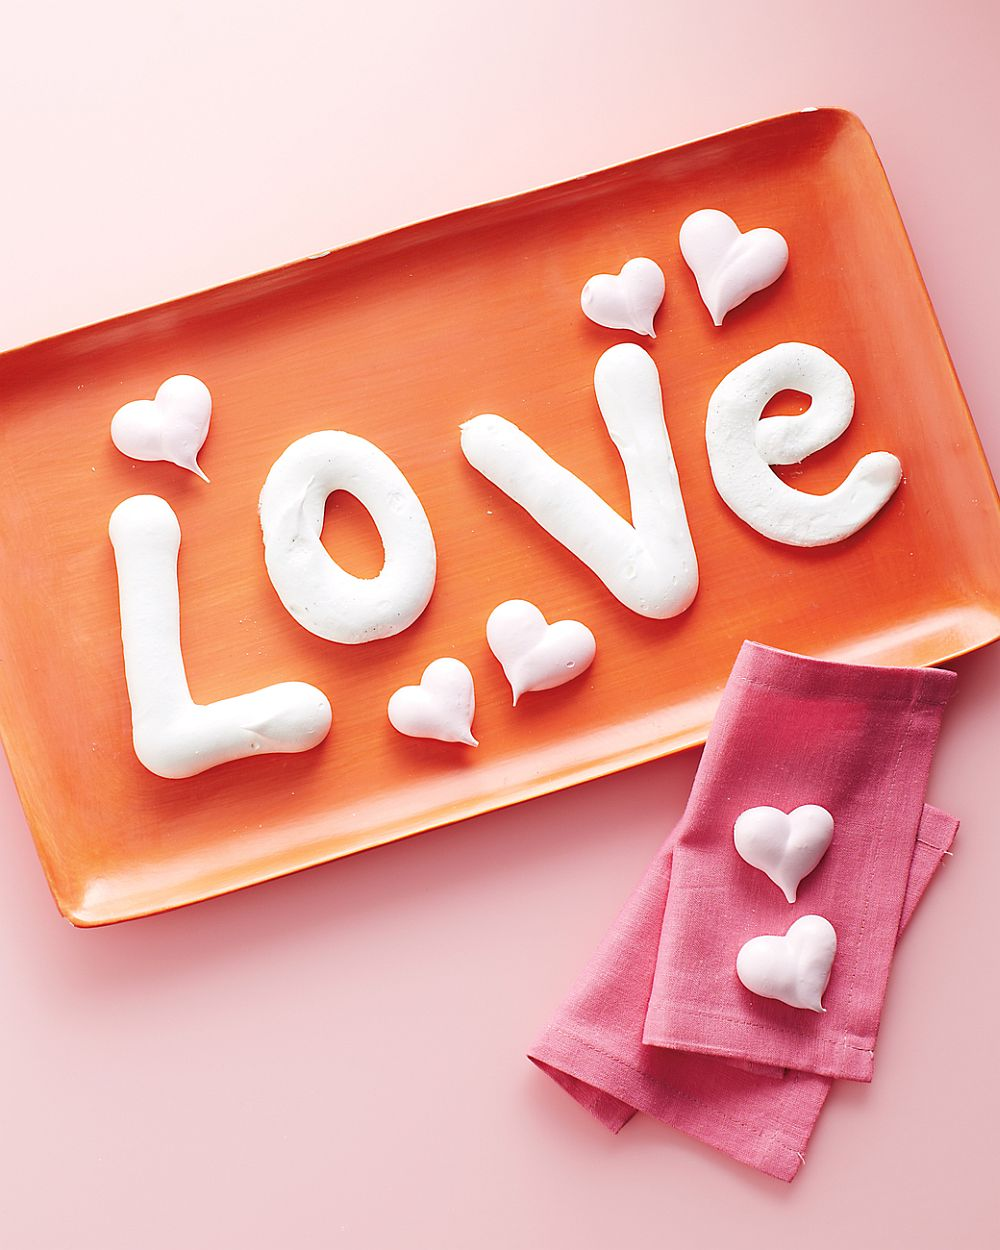 Exquisite Meringue Letters and Hearts from Martha Stewart 25 Easy and Fun DIY Valentine's Day Crafts for Everyone